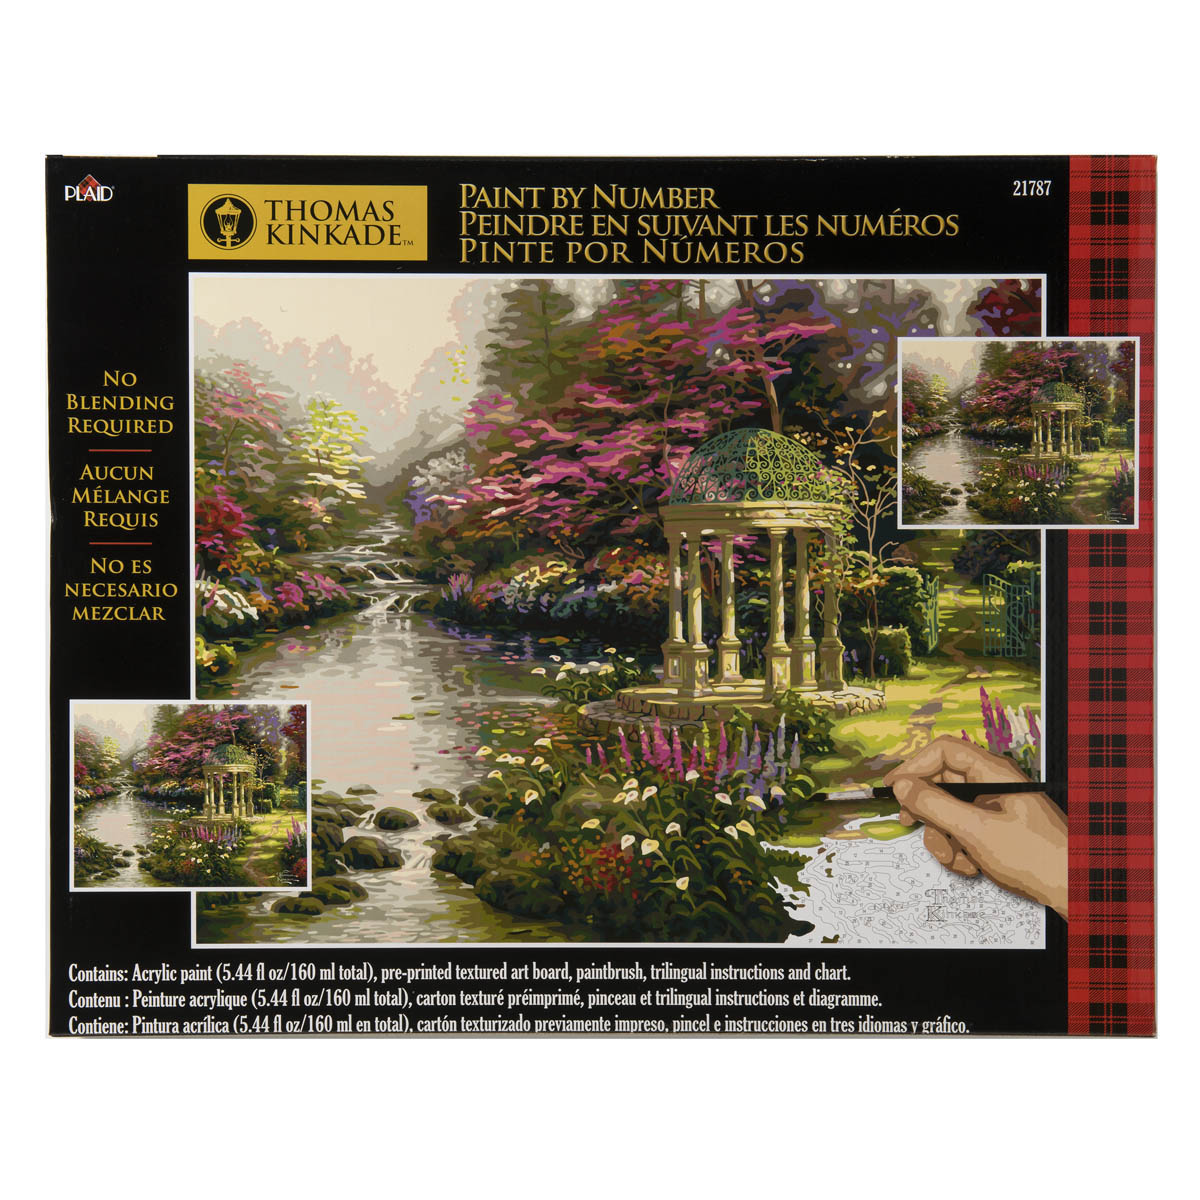 Plaid ® Paint by Number - Thomas Kinkade™ - The Garden of Prayer